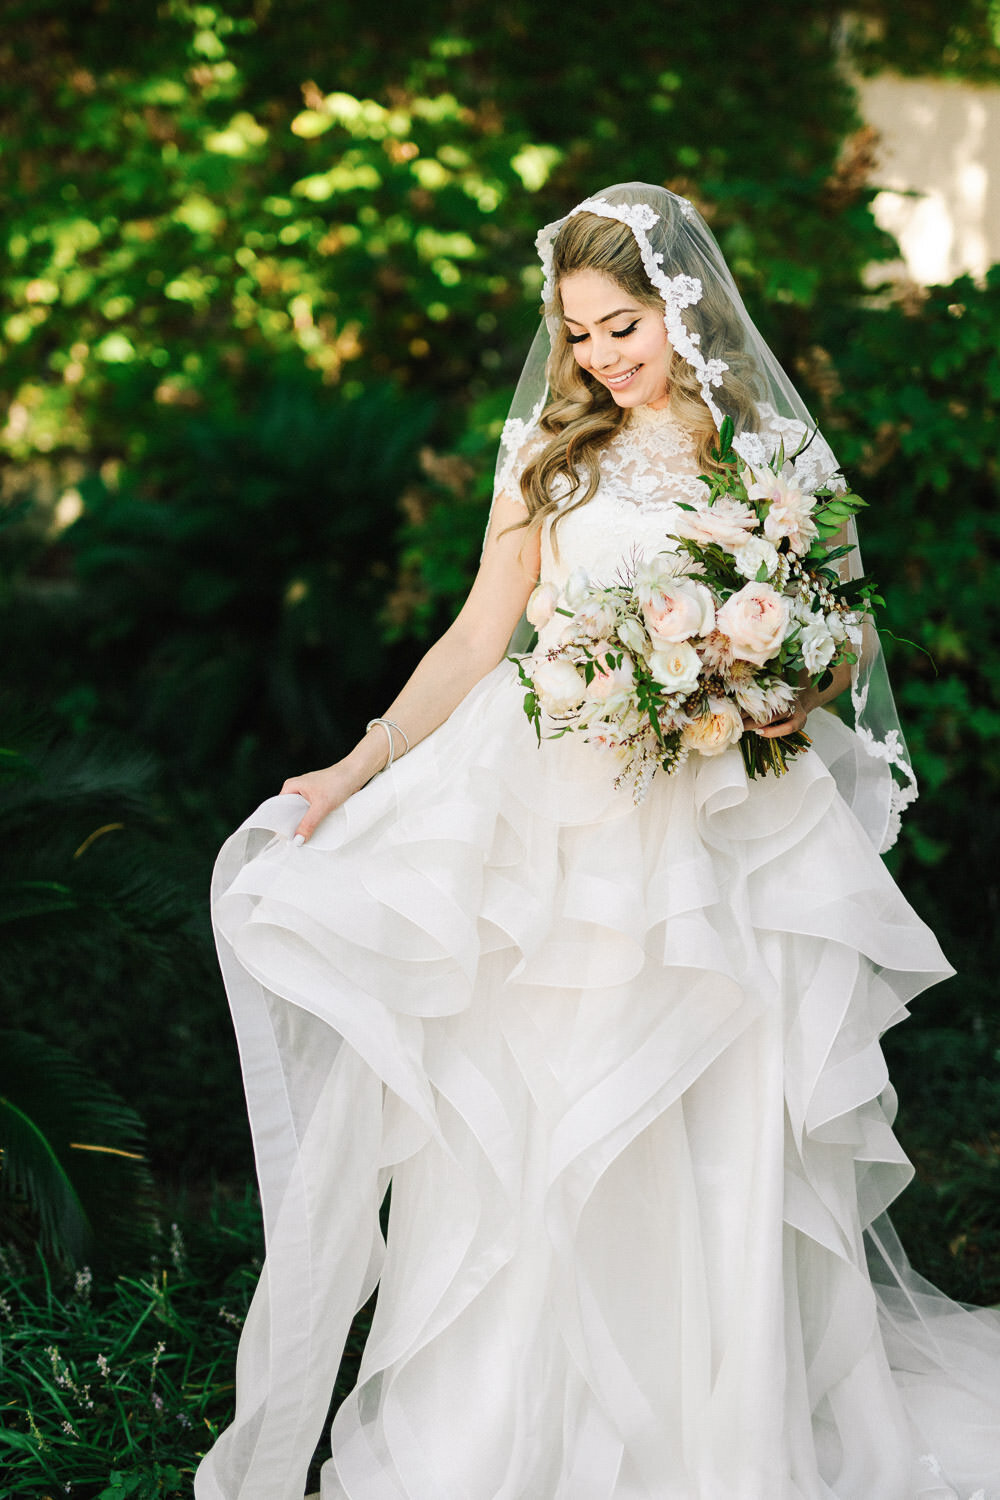 Bride in white wedding dress and veil holding bouquet in front of greenery